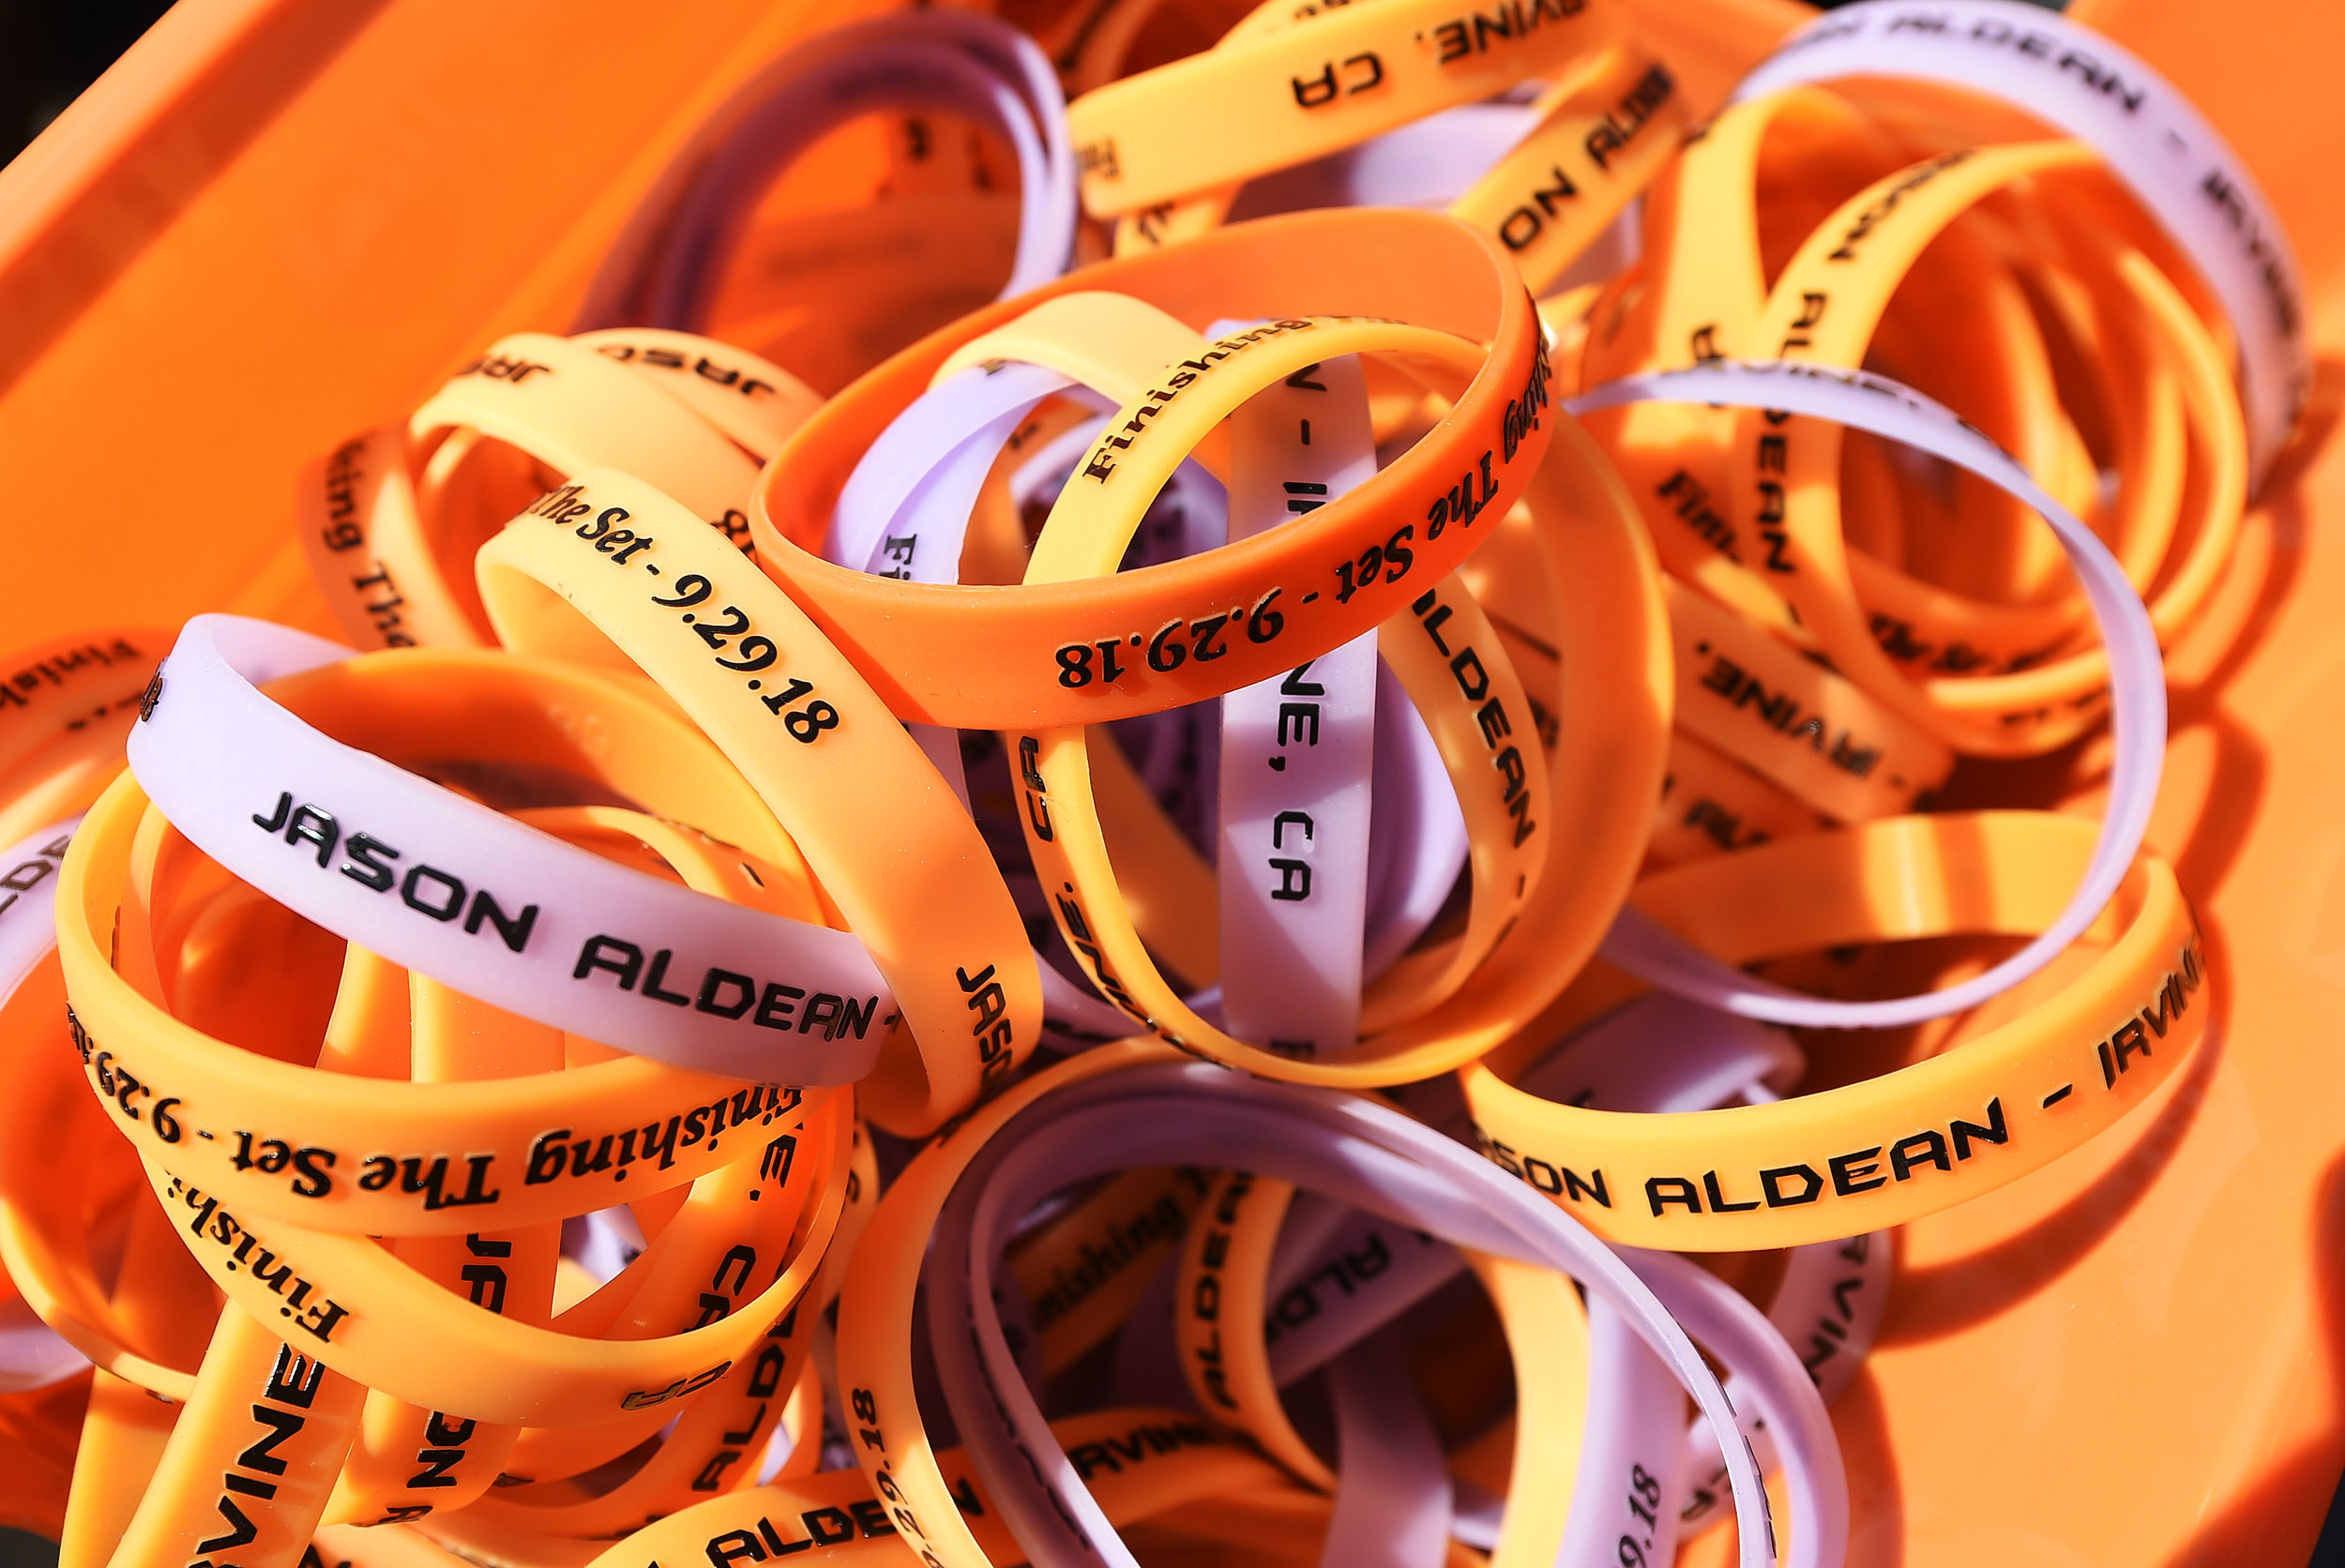 Some of the wristbands handed out by Route 91 Harvest Festival survivor Lisa Freeman Wehring sit in a tray prior to country music artist Jason Aldean's performance Saturday, September 29, 2018 at FivePoint Amphitheatre in Irvine. Approximately 500 Route 91 survivors attended the show. Aldean was on stage in Las Vegas last October 1 when a gun man shot and killed 58 concert goers at the Route 91 Harvest Festival.